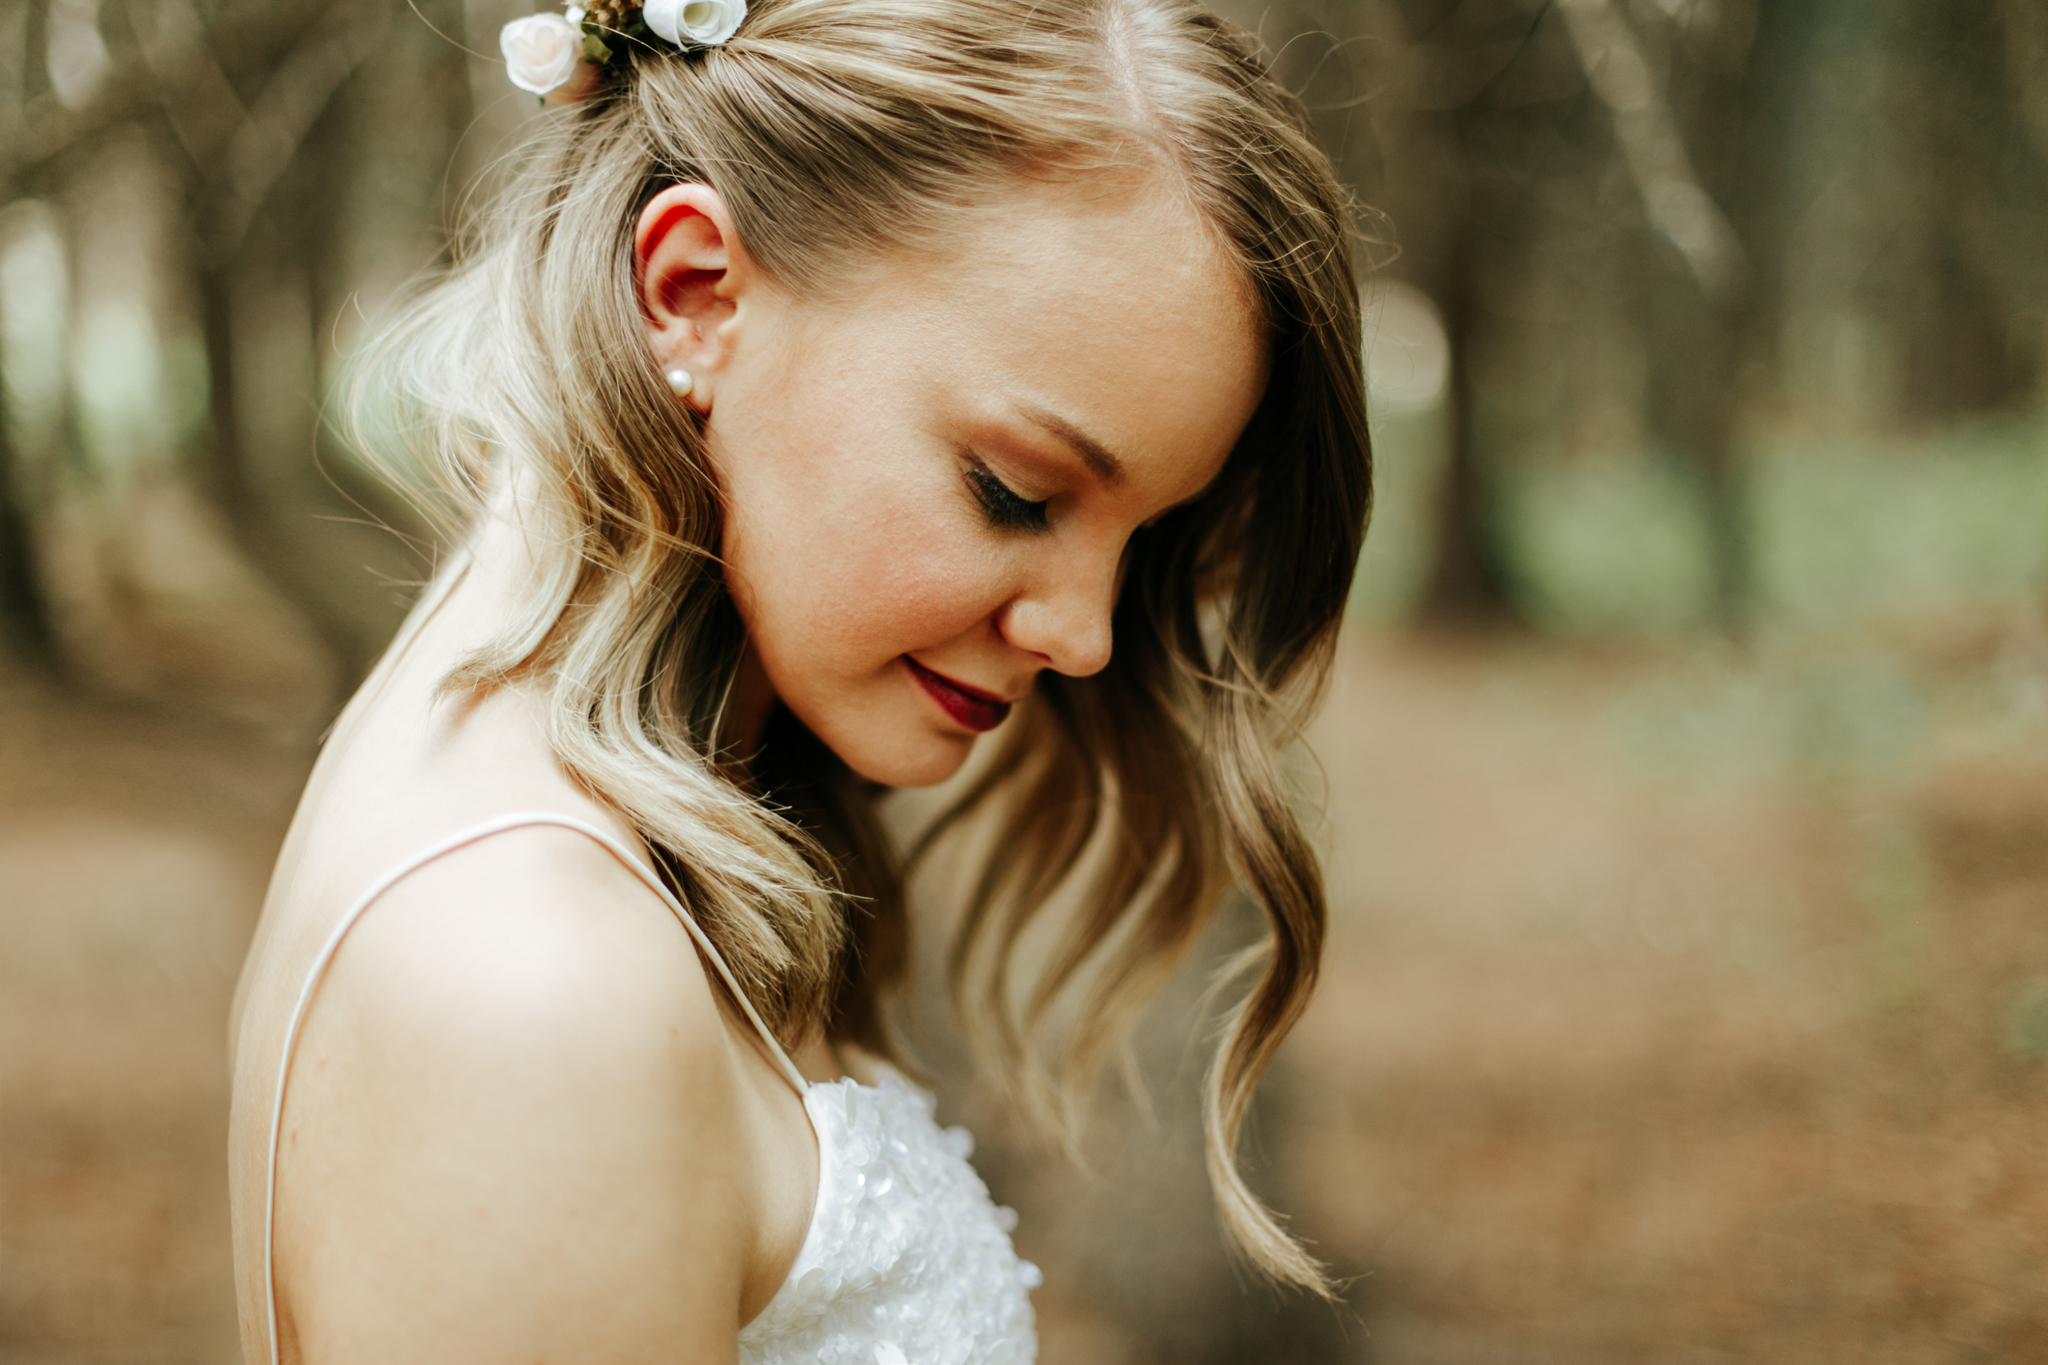 castle-mountain-wedding-photographer-love-and-be-loved-photography-lethbridge-pincher-creek-crowsnest-pass-yannick-rylee-photo-image-picture-112.jpg